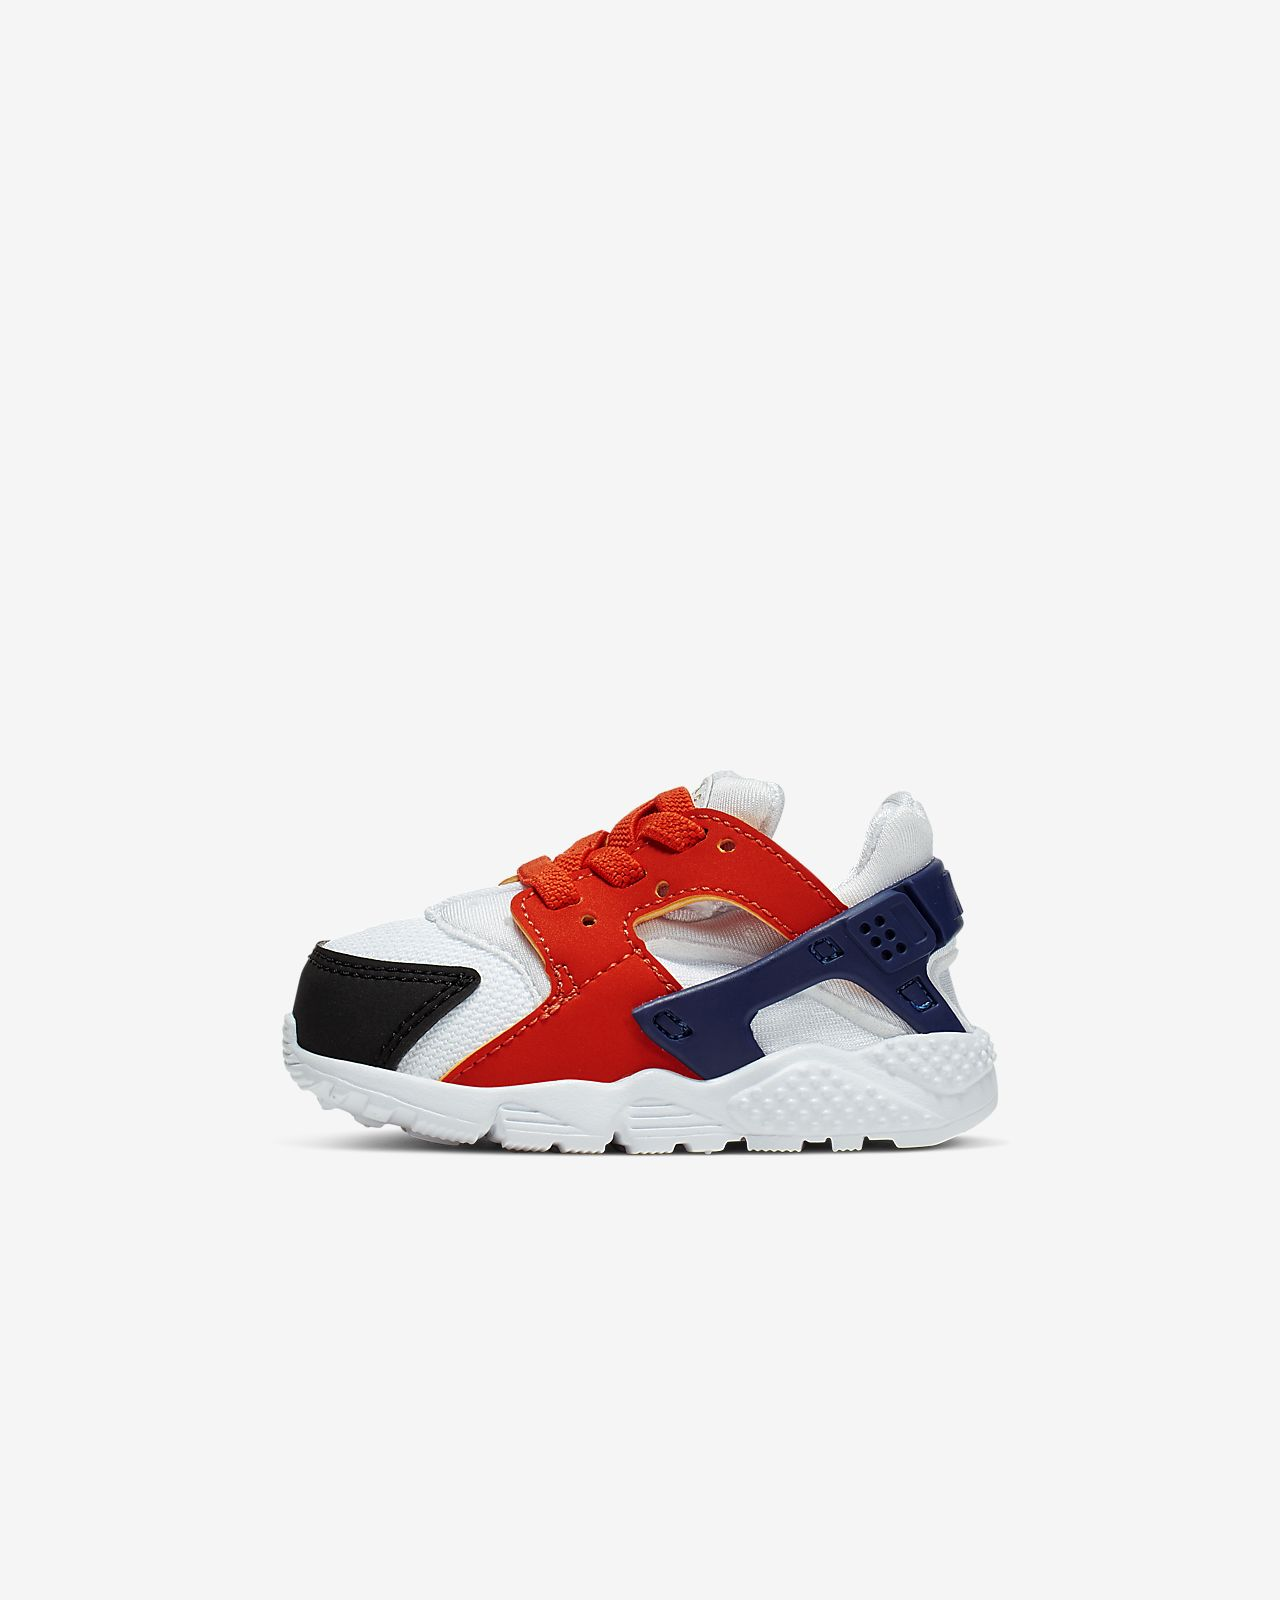 Nike Huarache: toddler sizing | Sneakers | Cute baby shoes